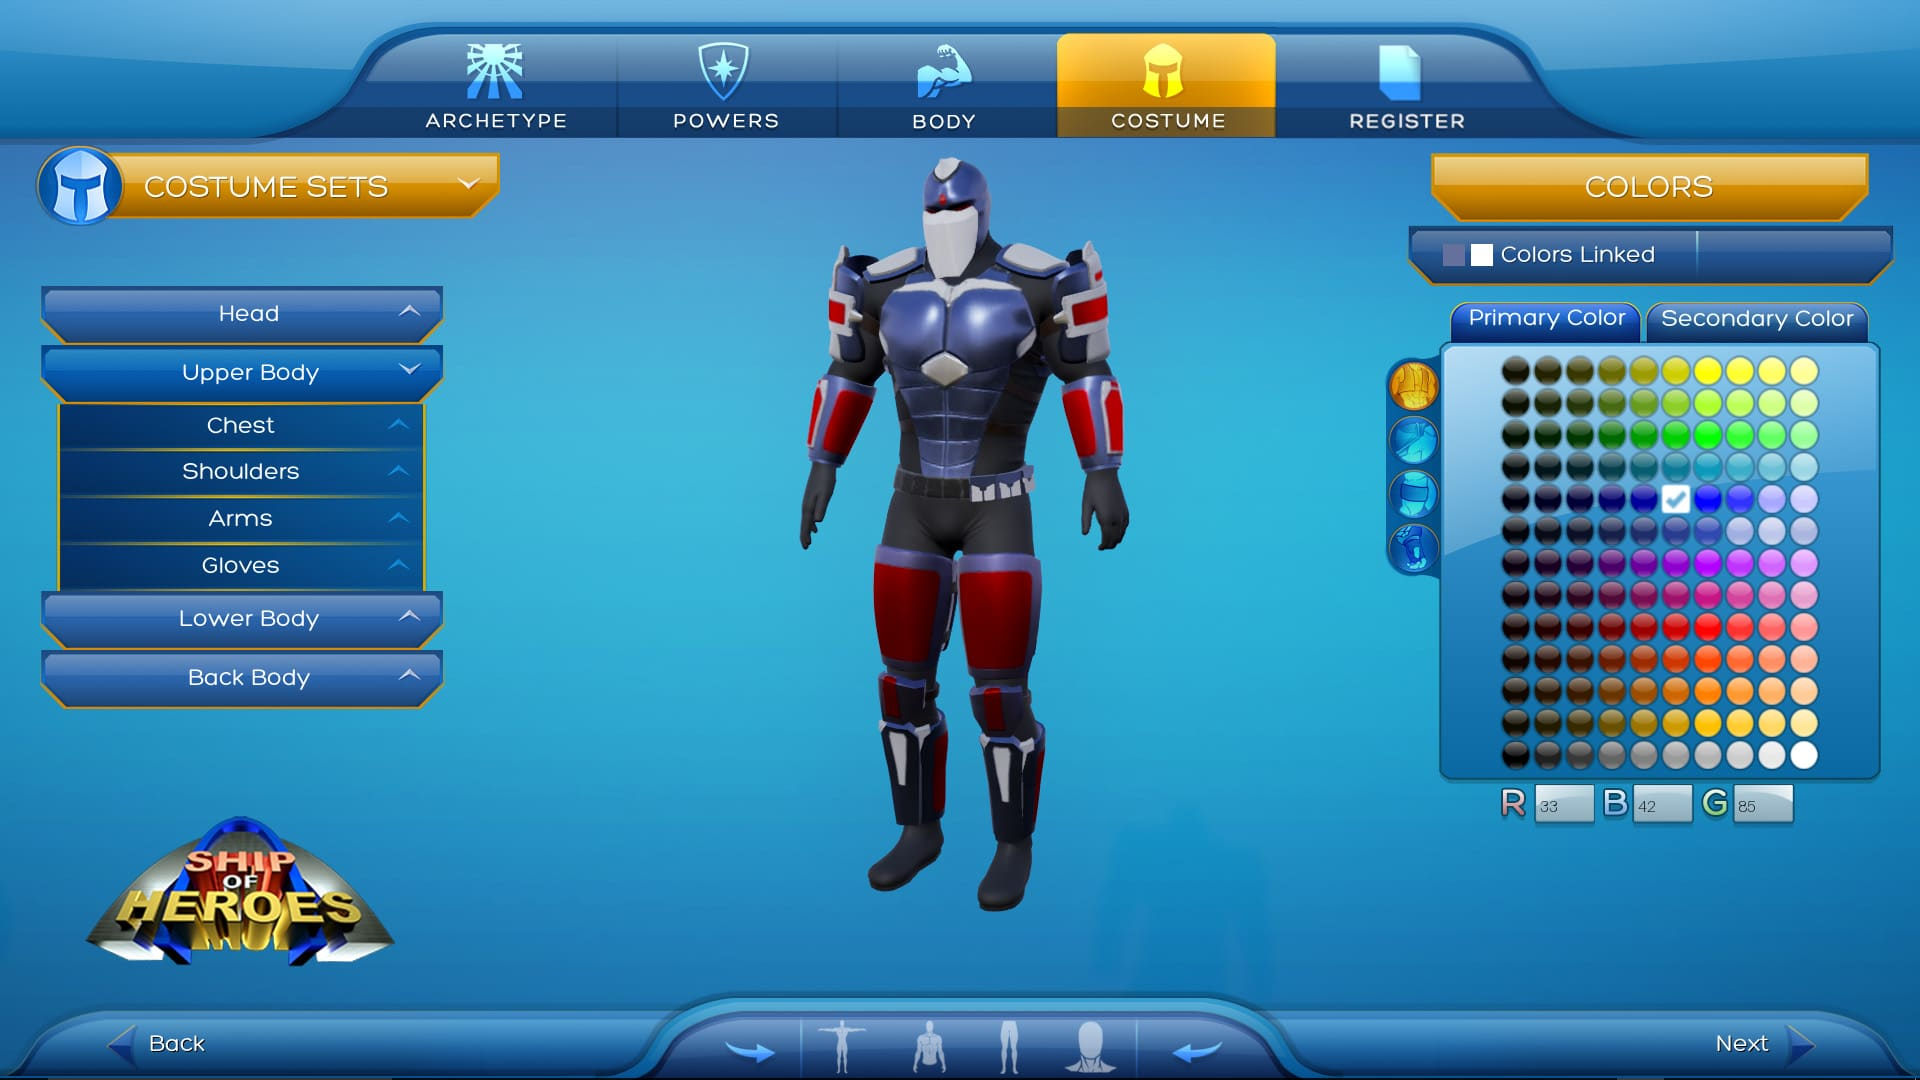 Ship of Heroes character creator